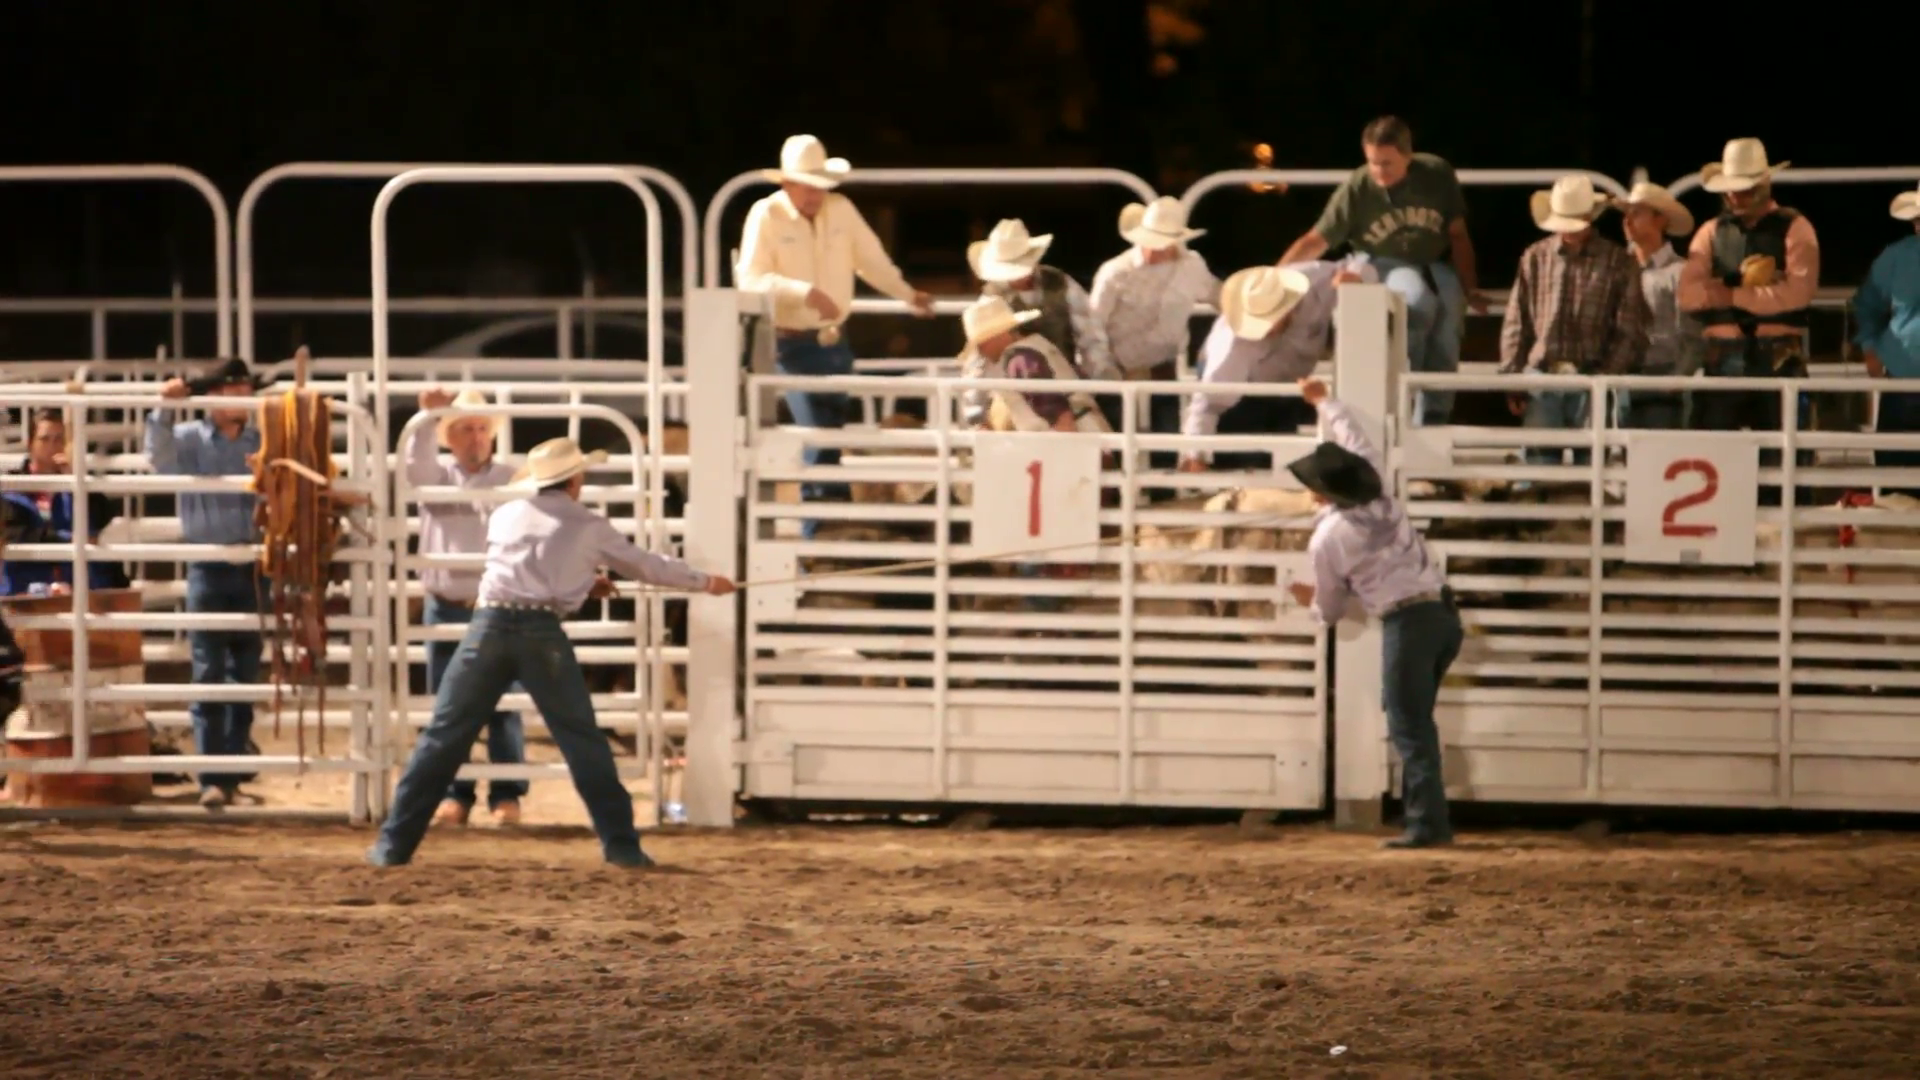 Bull rider getting ready rodeo at night P HD 1013 Stock Video Footage -  VideoBlocks - Rodeo PNG HD